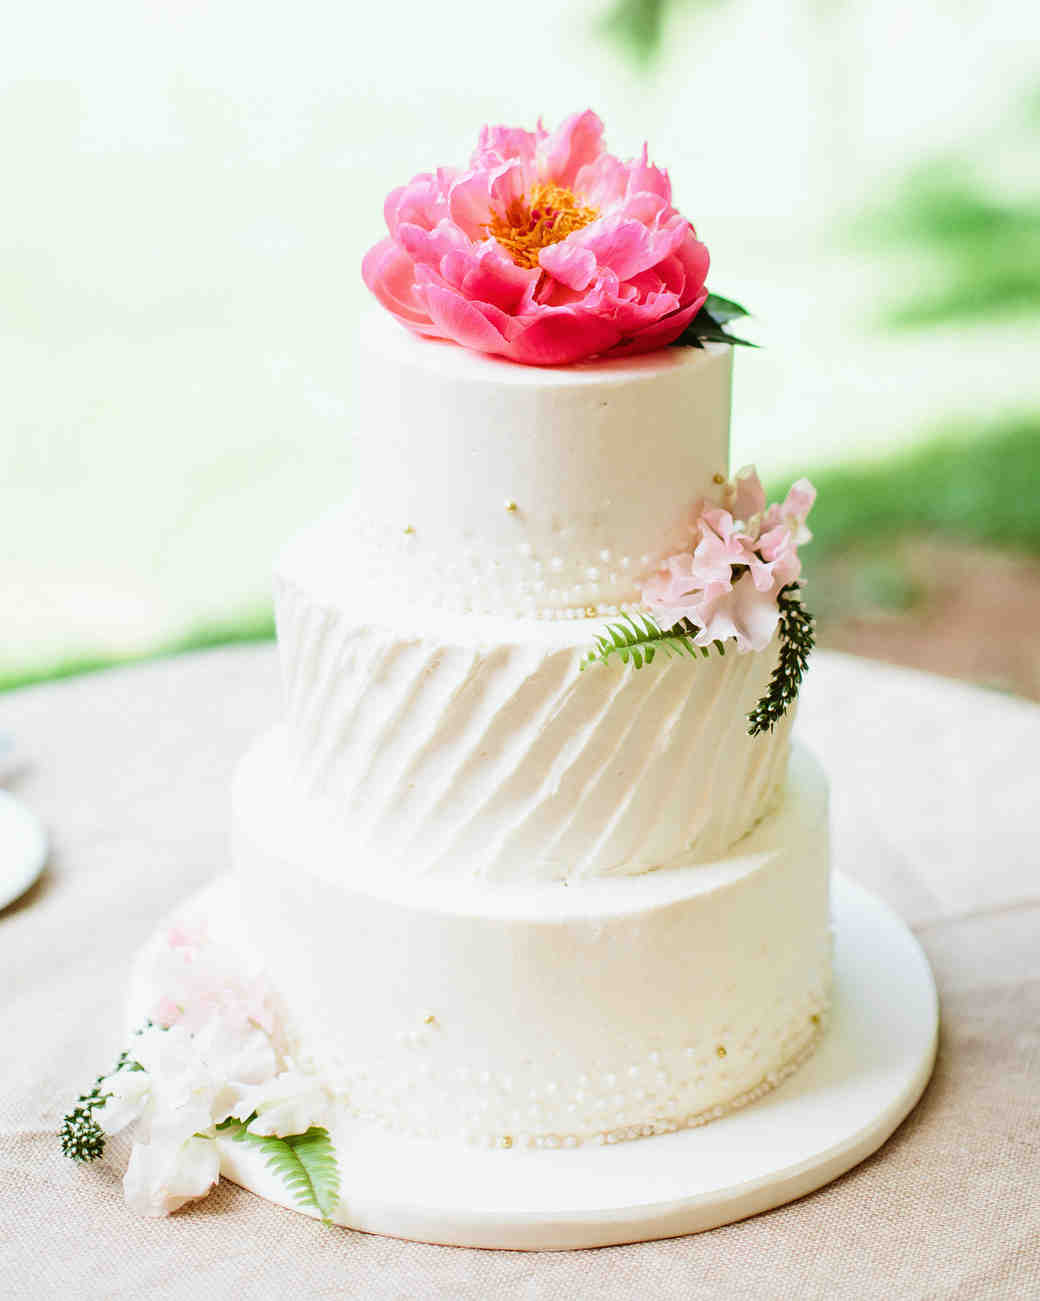 25 wedding cake design ideas thatll wow your guests martha 25 wedding cake design ideas thatll wow your guests martha stewart weddings junglespirit